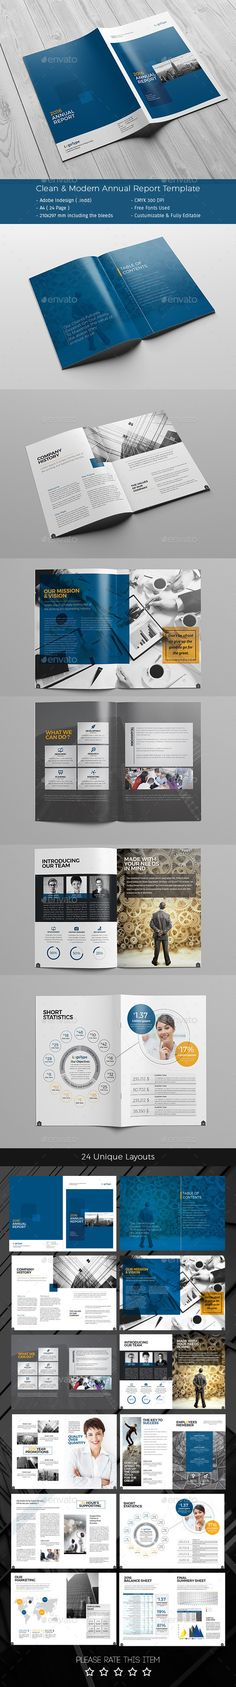 Professional, Creative and High Quality Annual Report 28 Pages A4 - professional report template